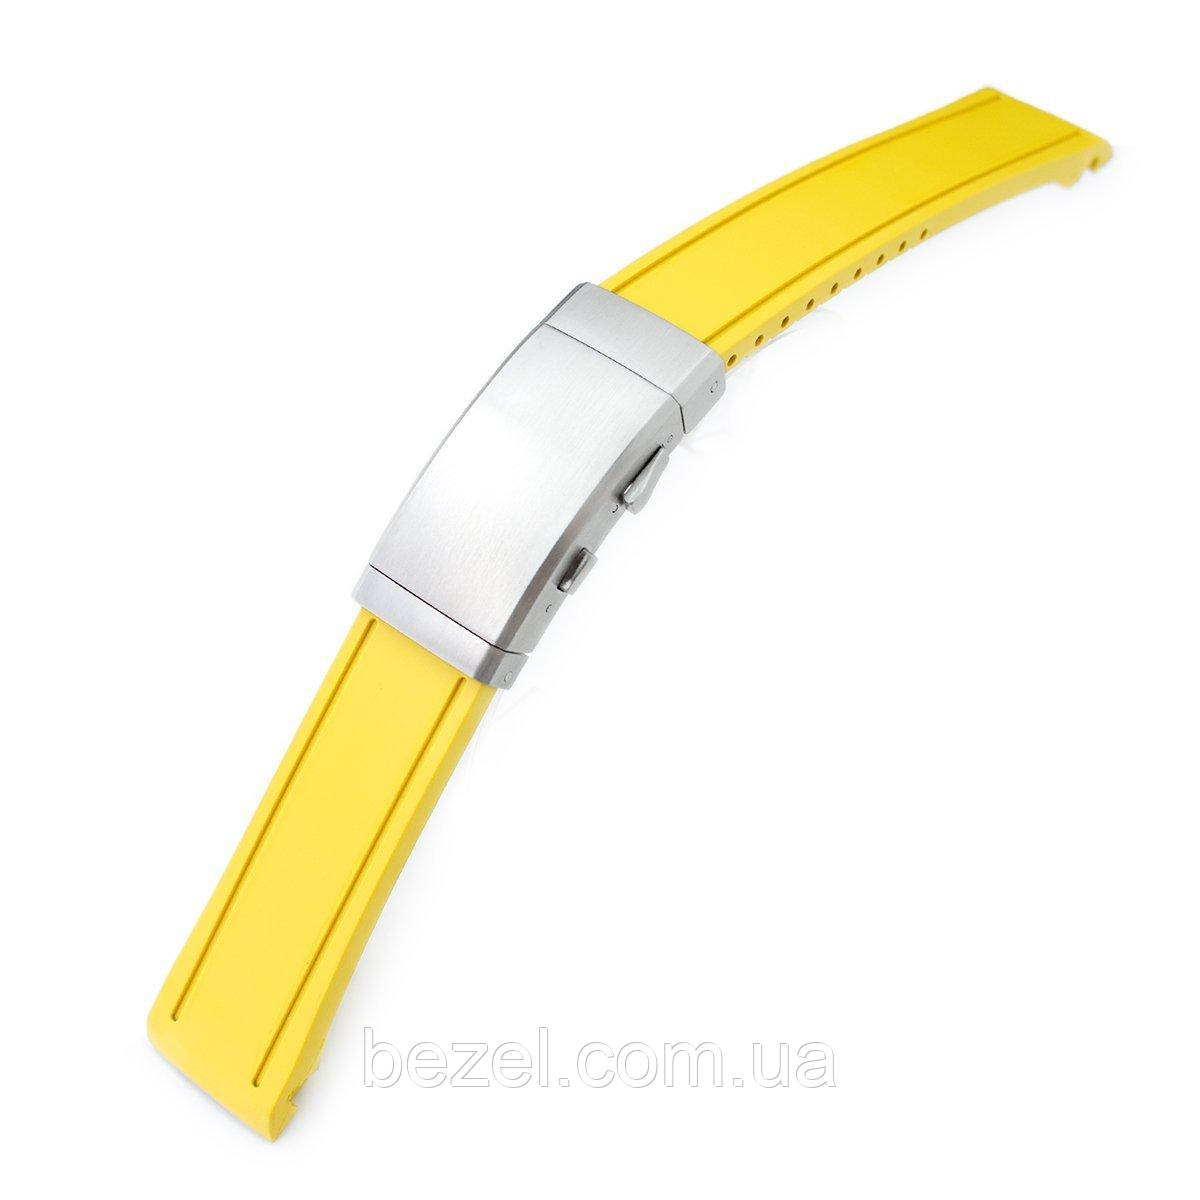 20mm Crafter Blue - Yellow Rubber Curved Lug Watch Band for Seiko MM300 Prospex Marinemaster SBDX001, Wetsuit Ratchet Buckle